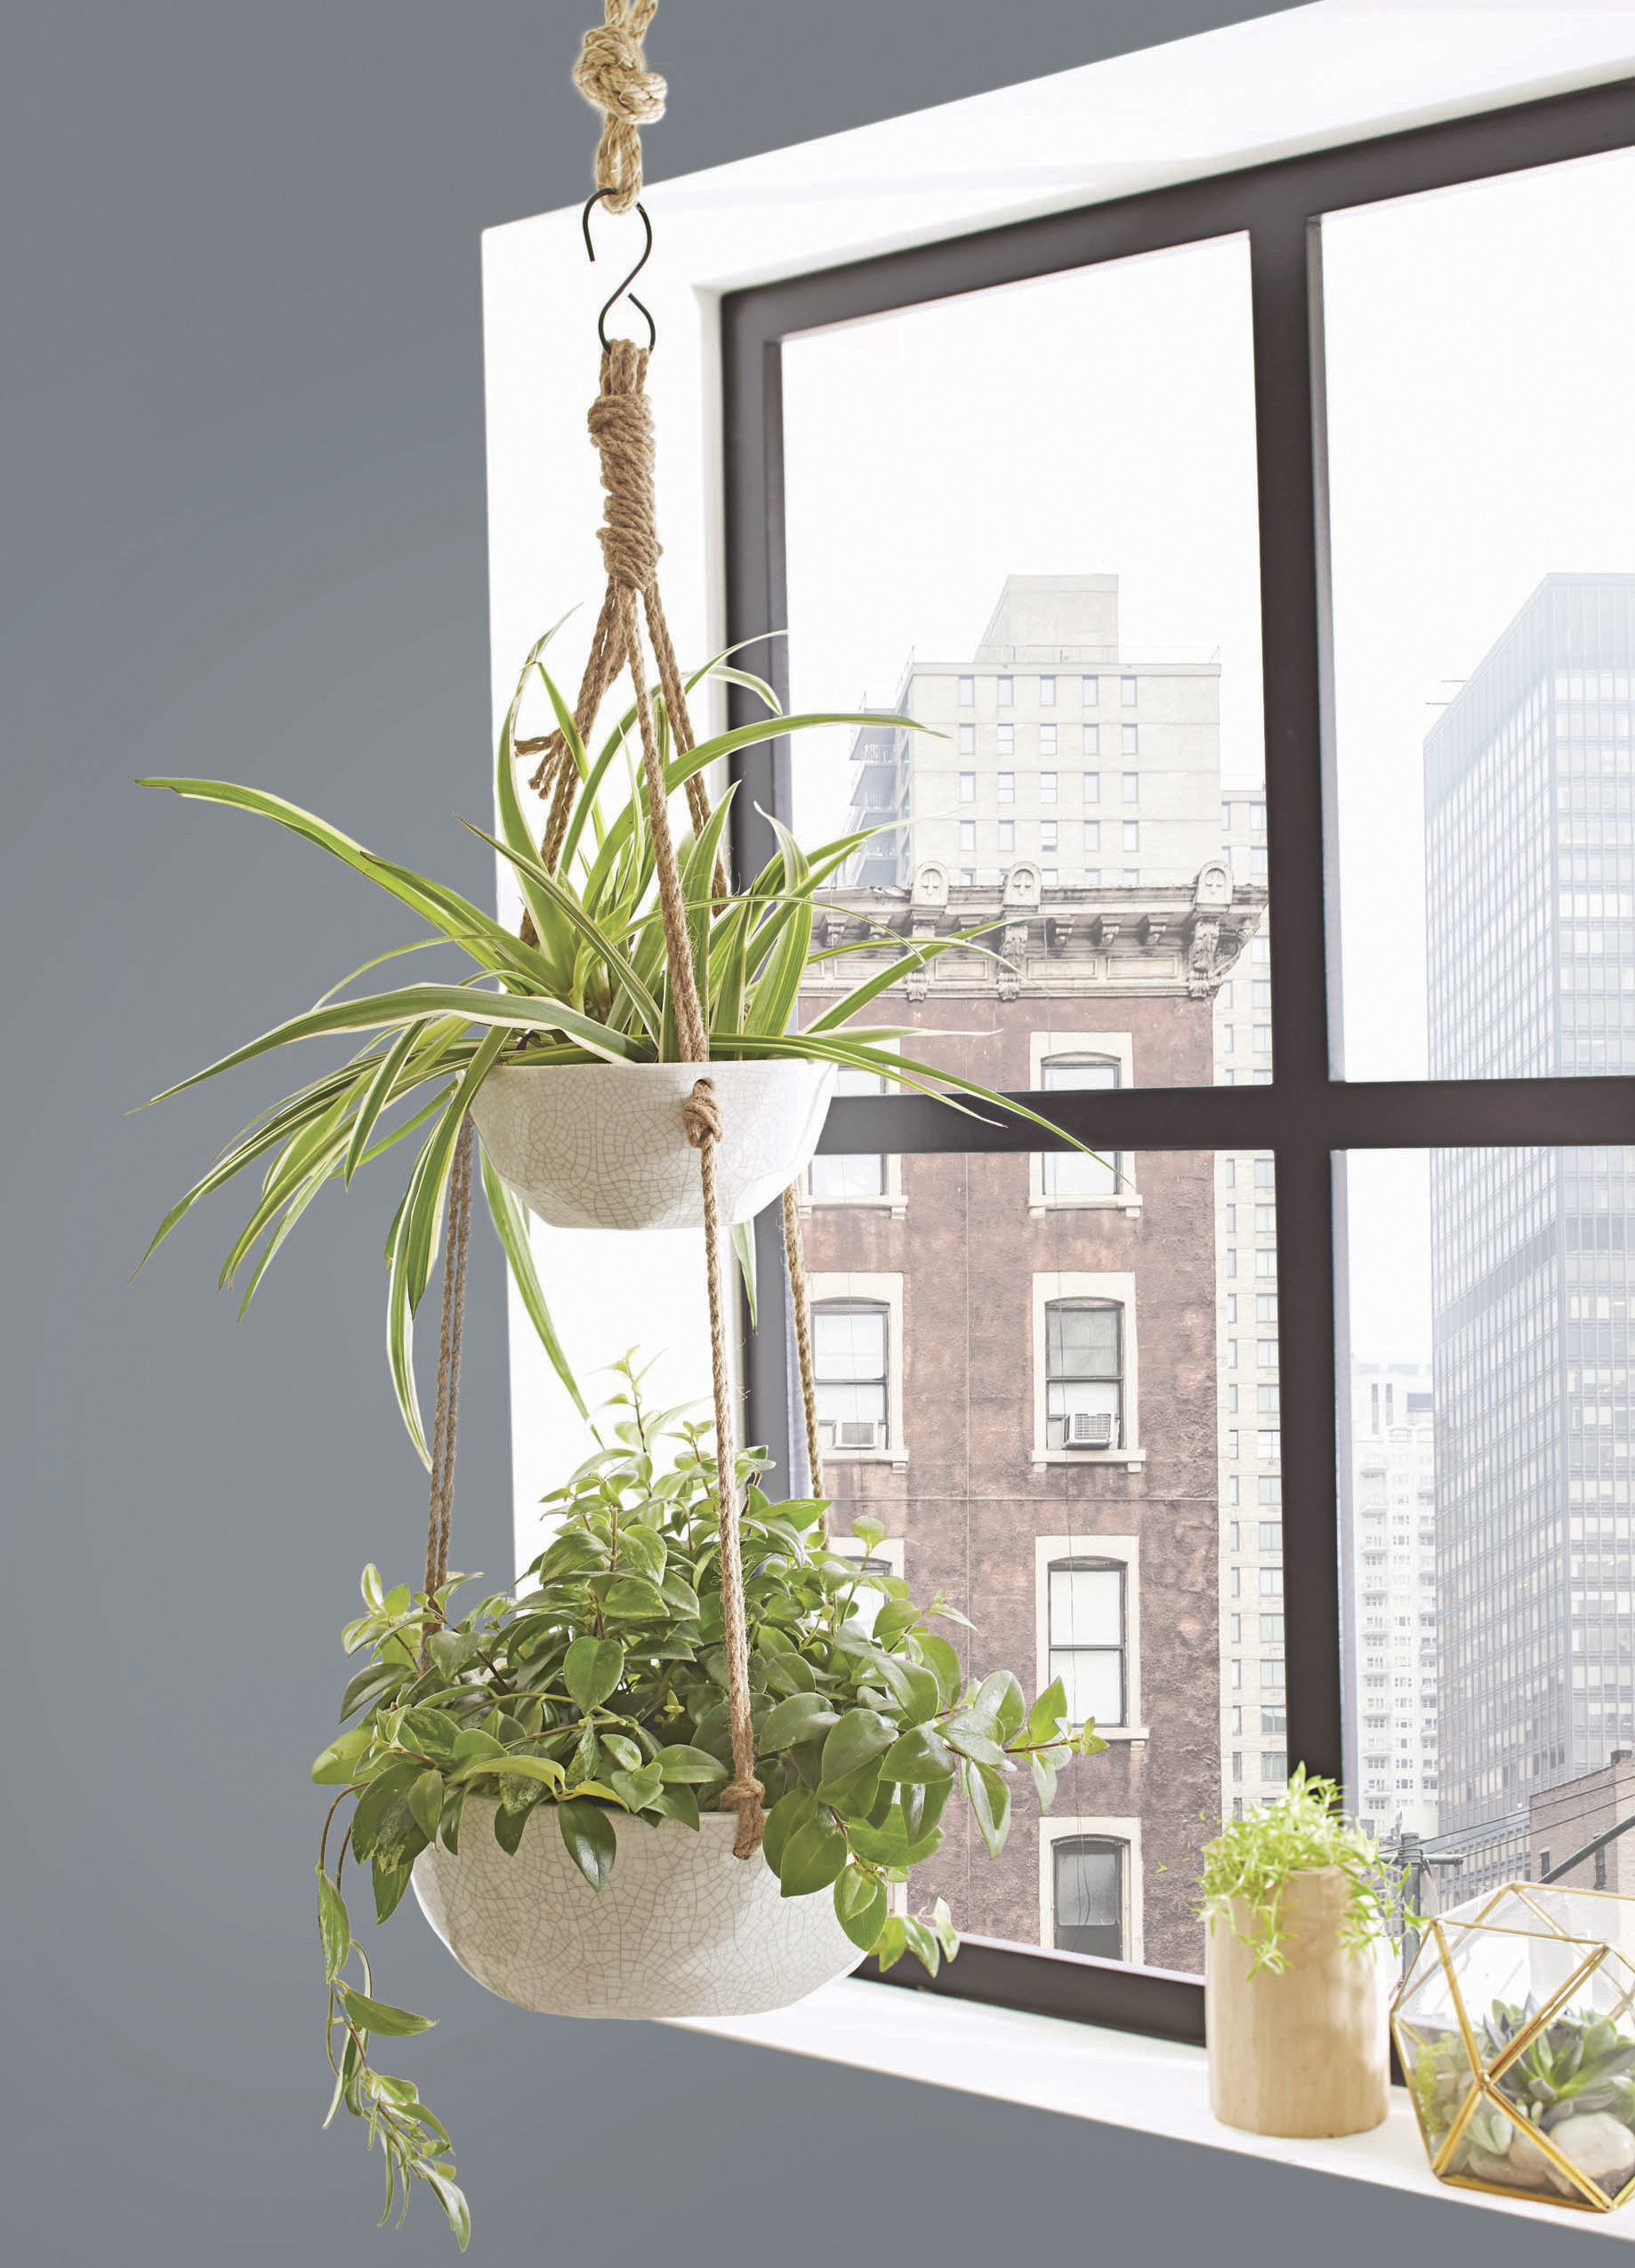 The plant hanger featured indoors by a window in an apartment